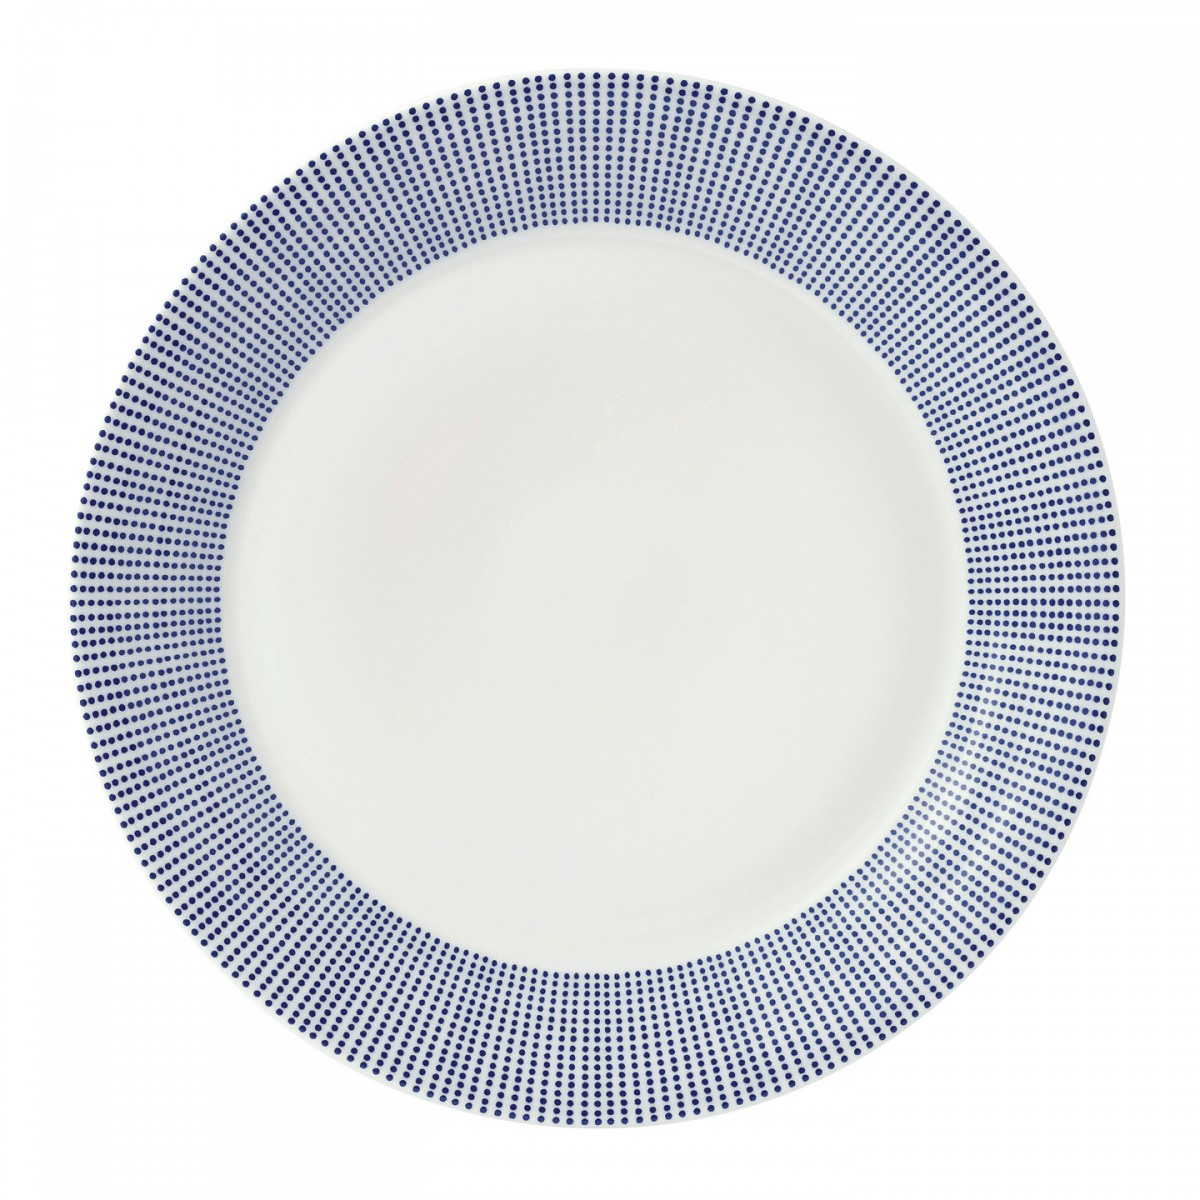 Pacific Dots Dinner Plate - Royal Doulton | US